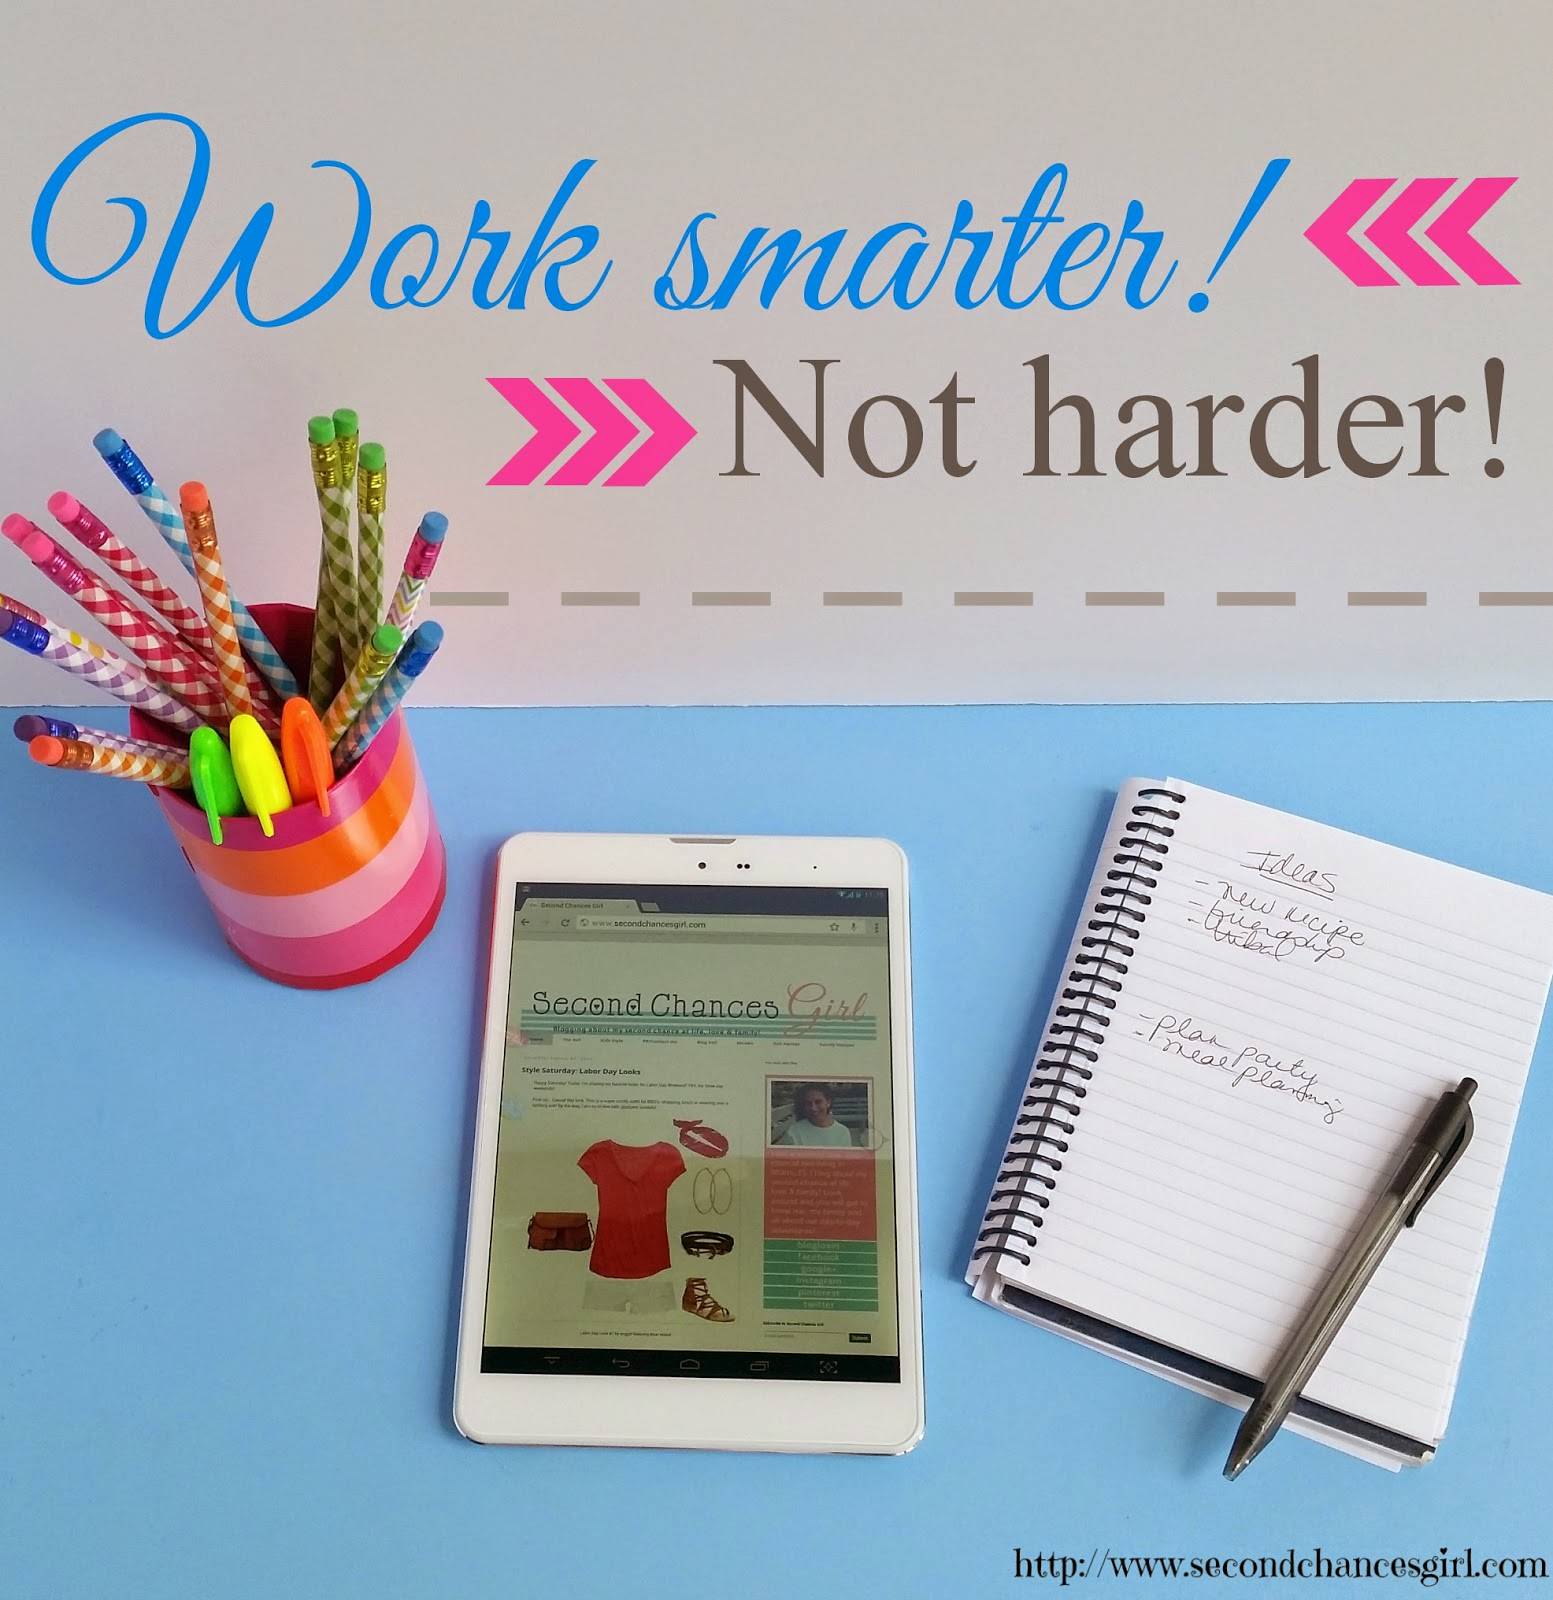 Work Smarter Not Harder with the T-Mobile Trio AXS Tablet! #TabletTrio #shop